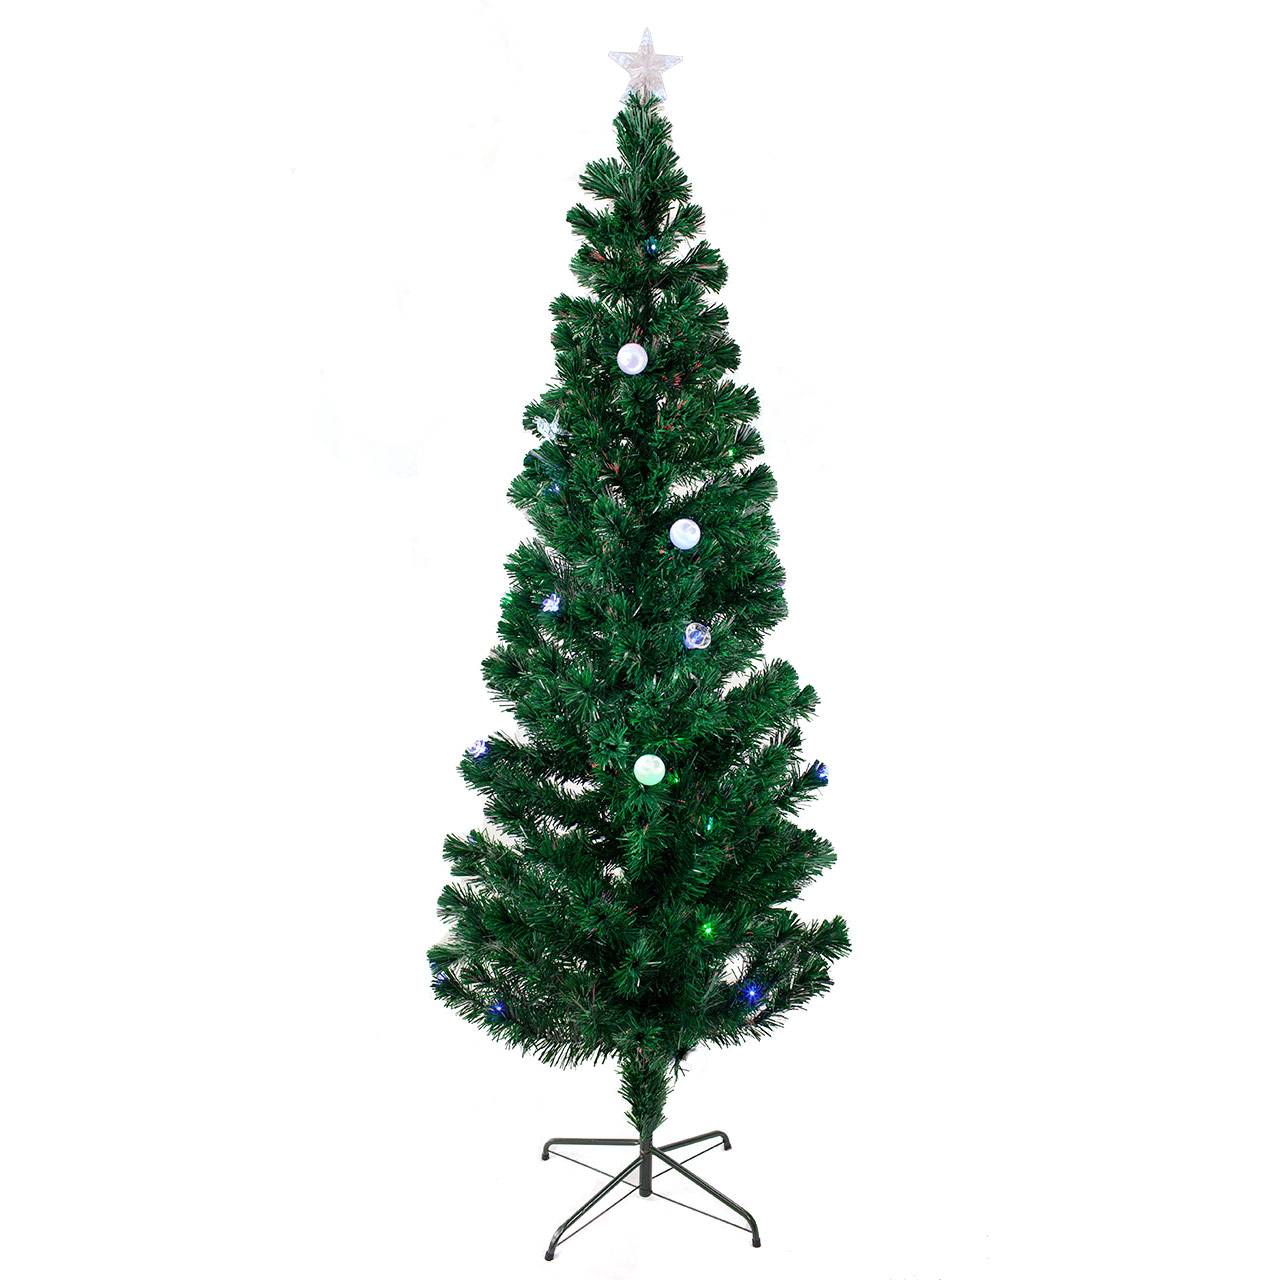 6.5 FT PRE-LIT MULTI COLOR LED & FIBER OPTIC CHRISTMAS TR...